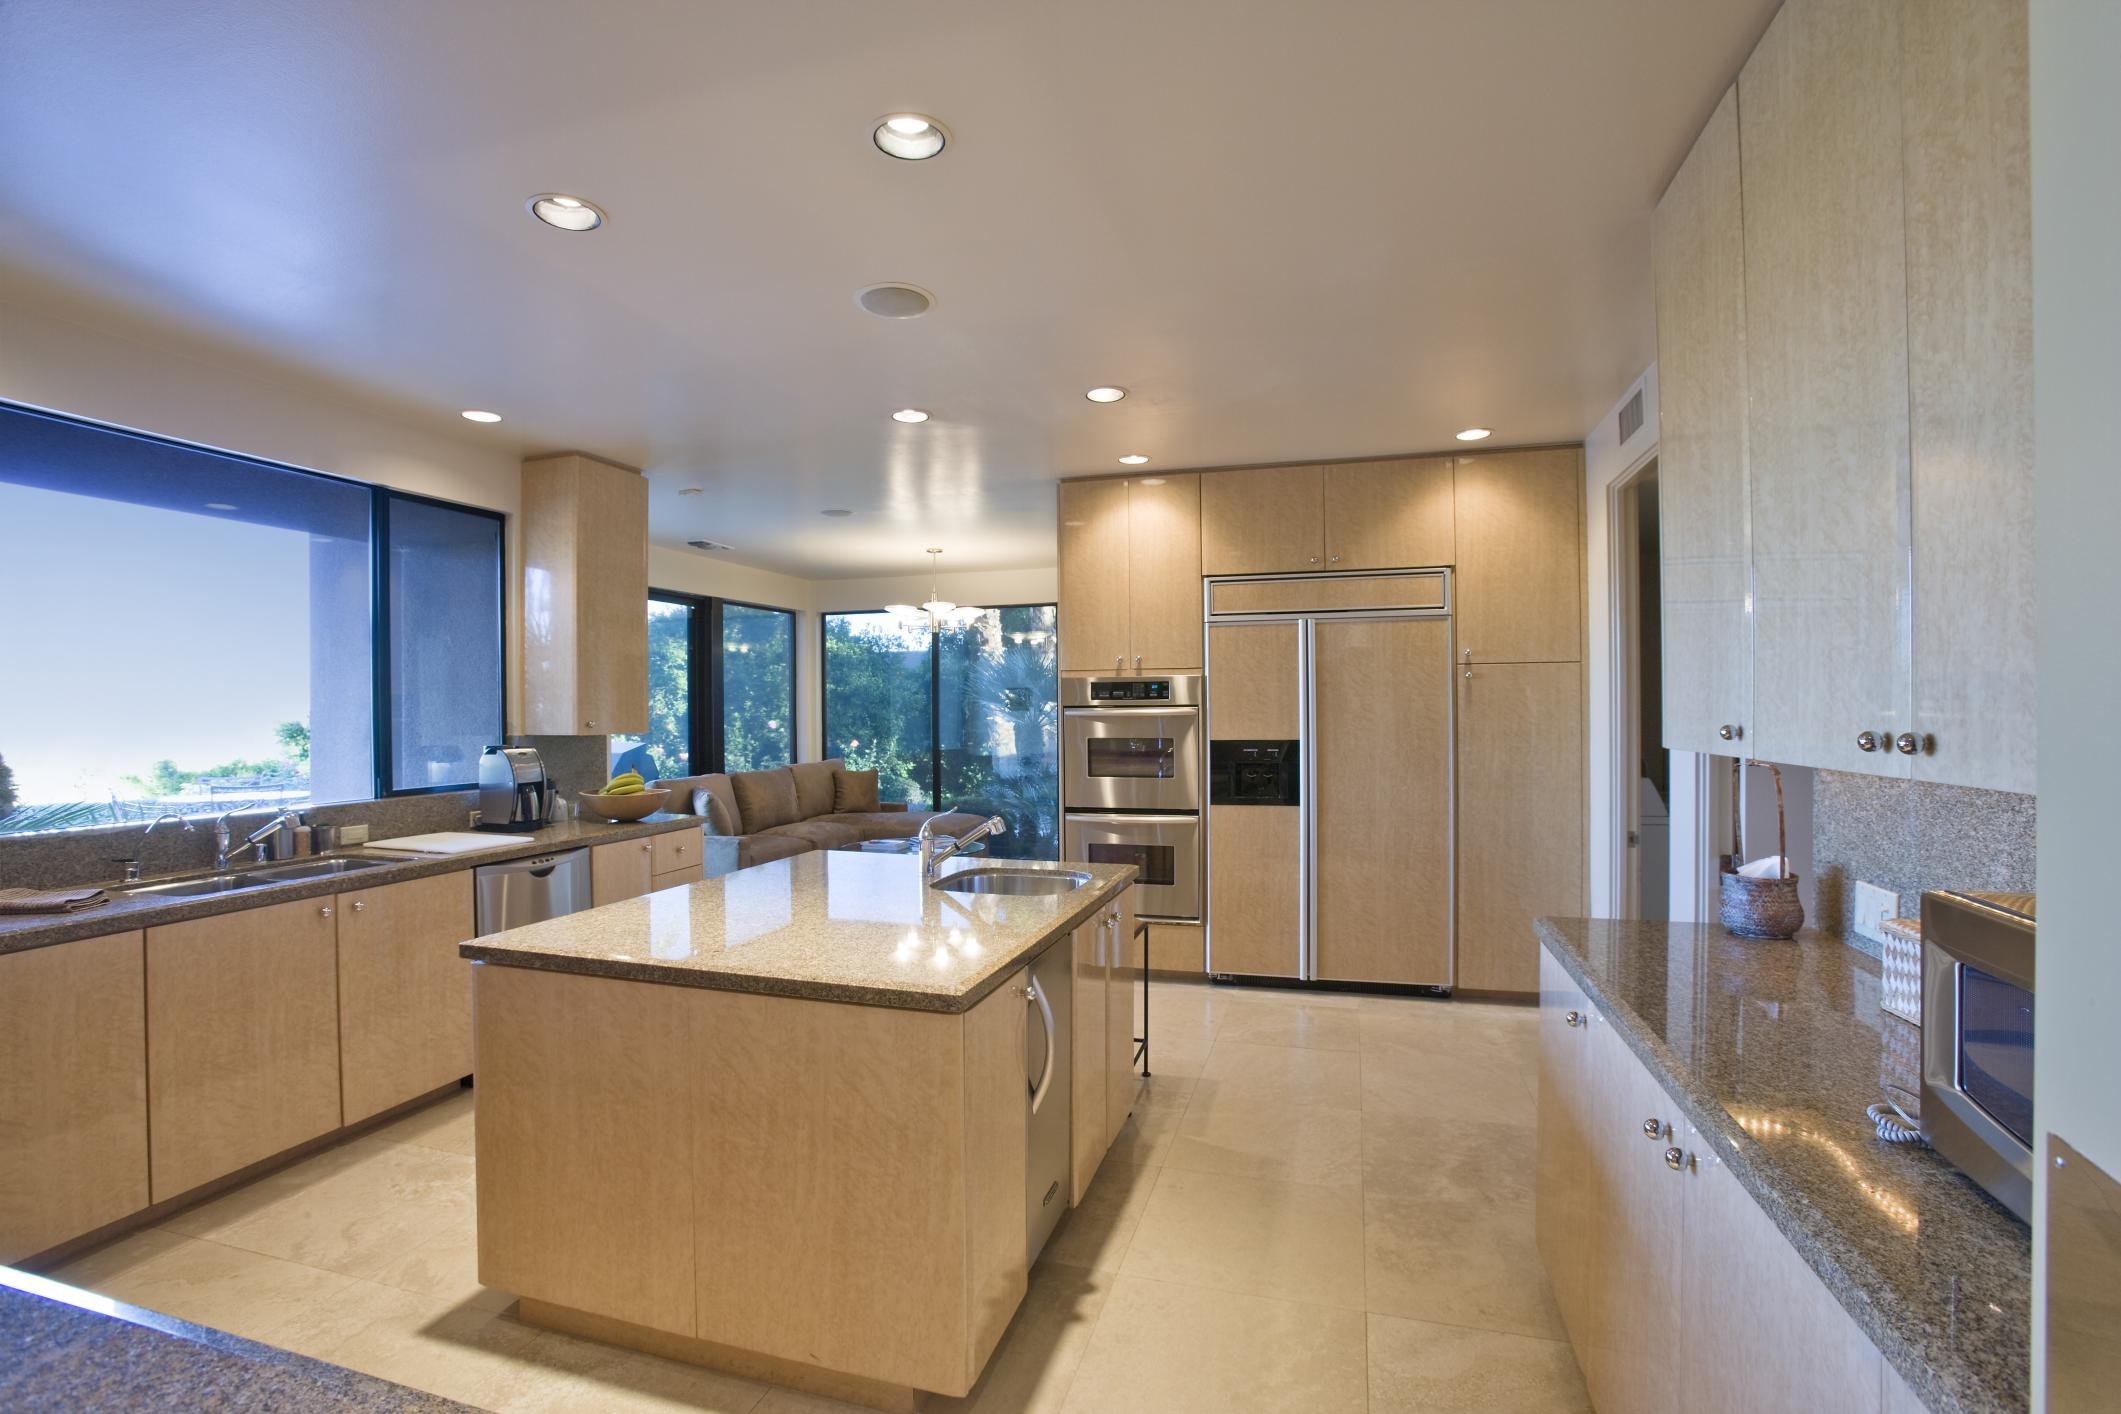 Barrie Kitchen Renovations - Kitchen Remodeling 1